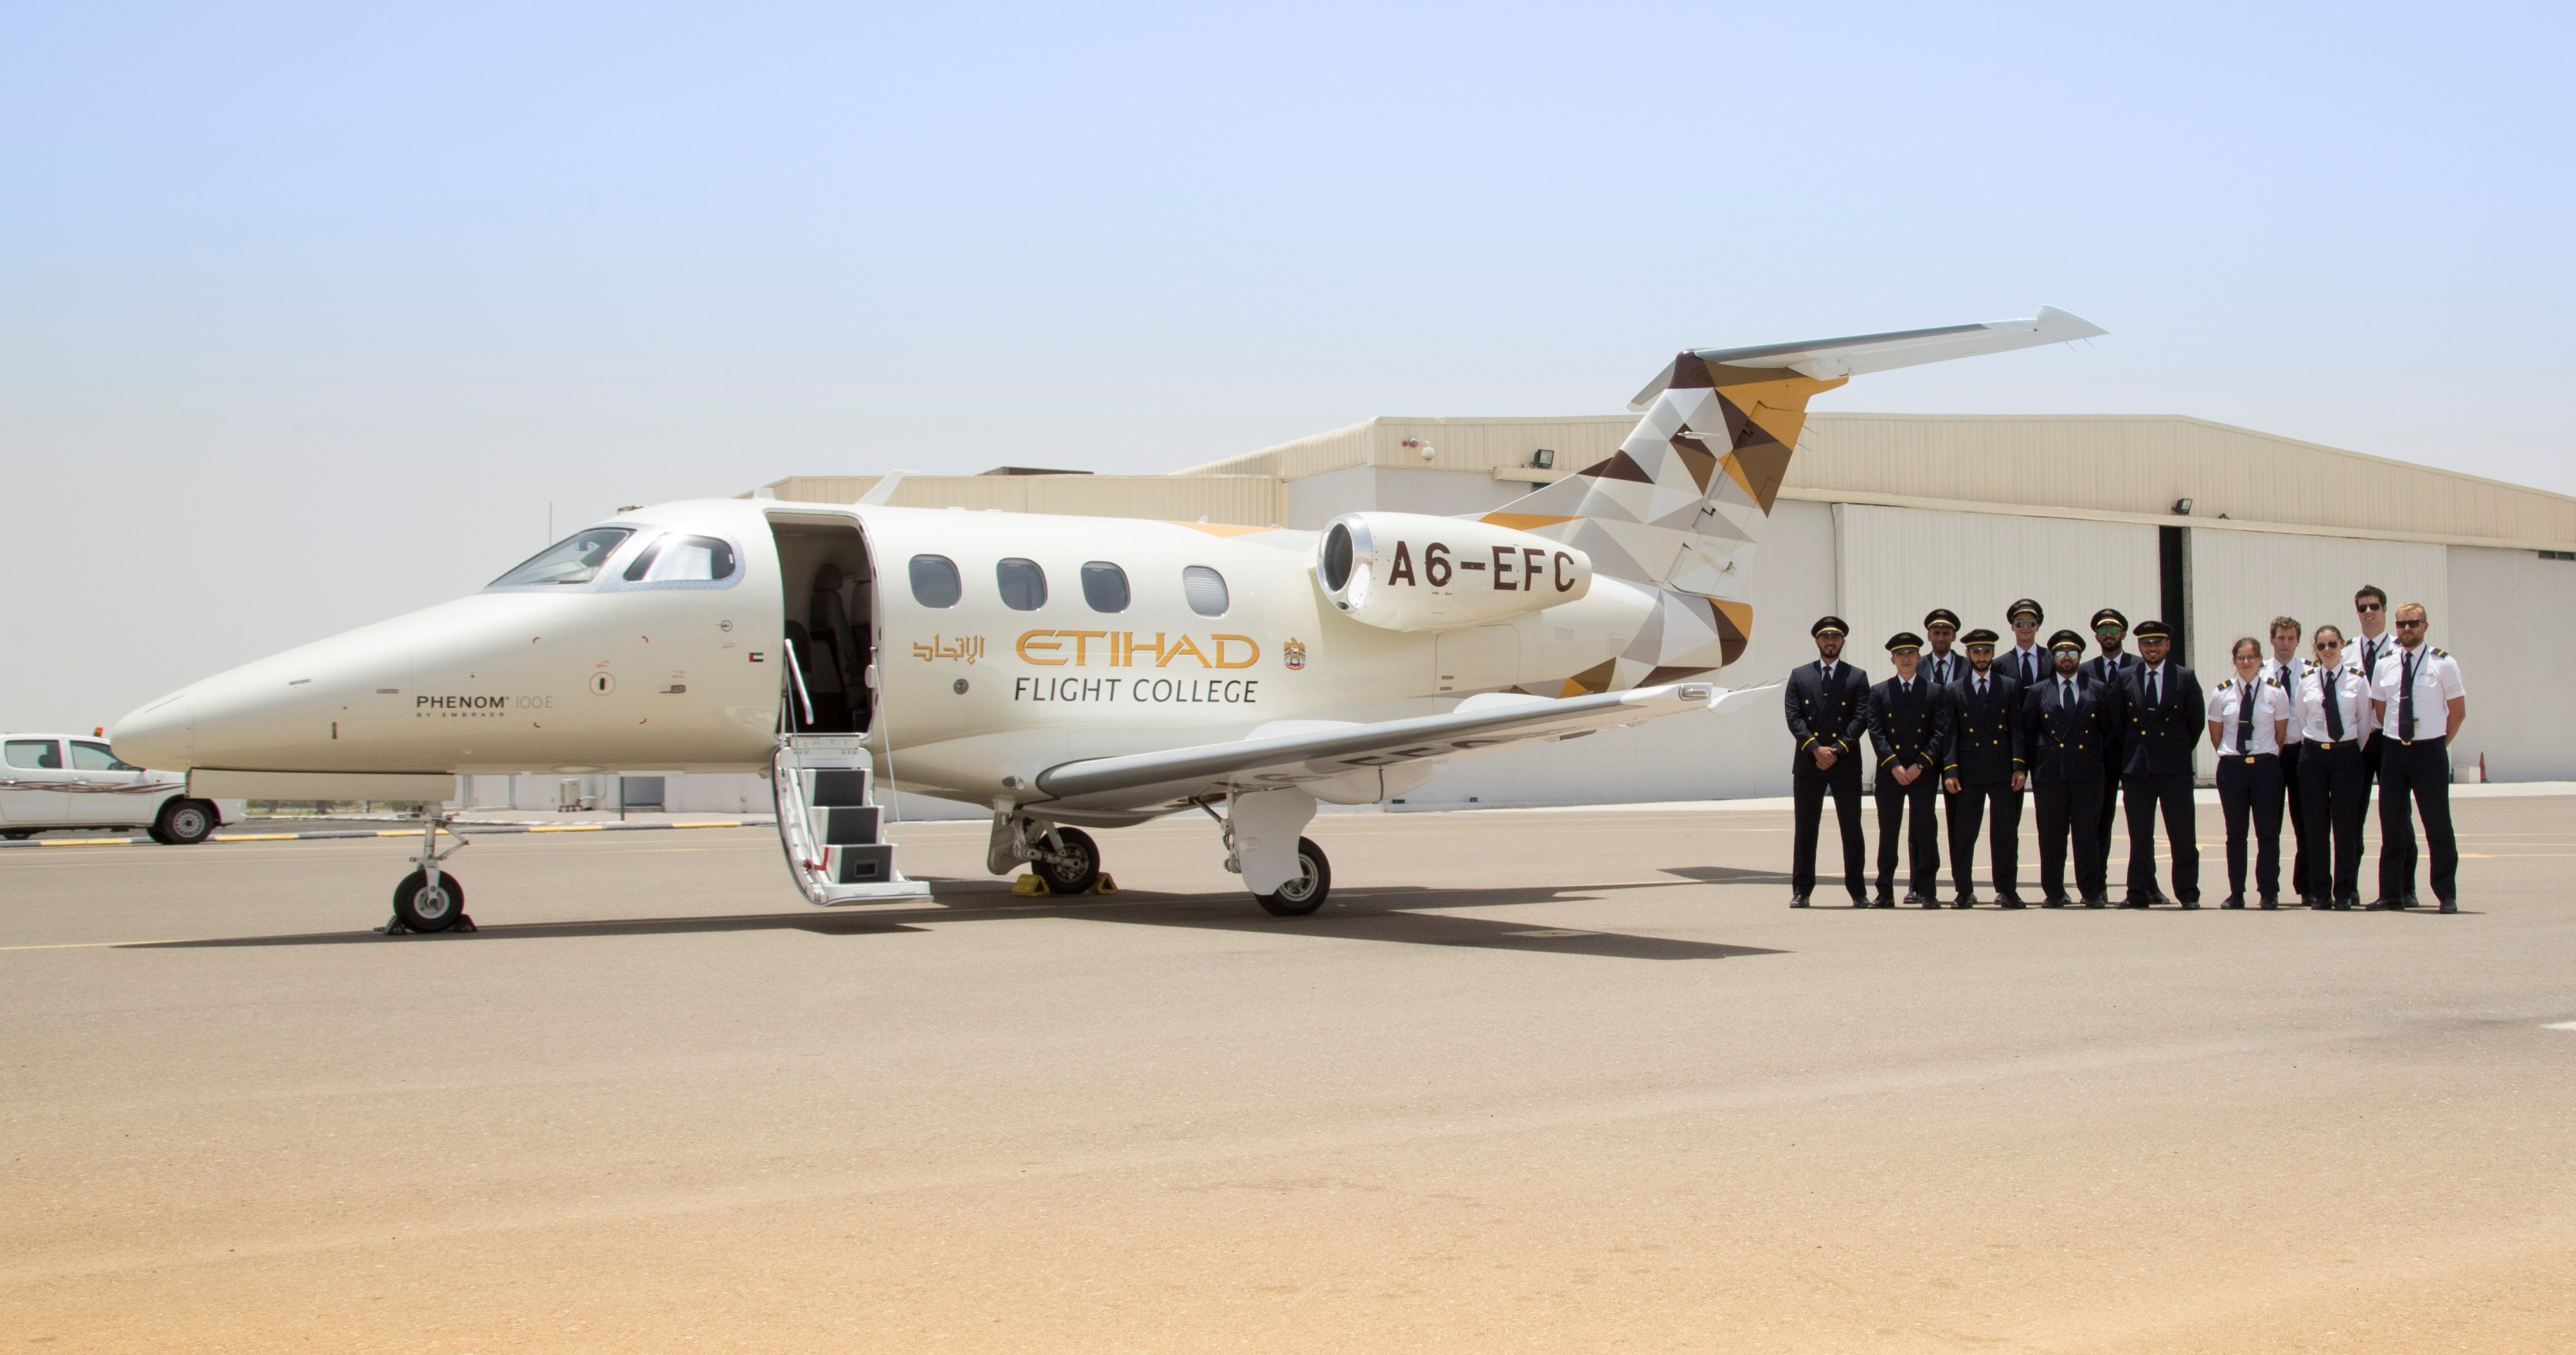 Etihad Flight College takes delivery of its first Phenom 100E from Embraer Executive Jets